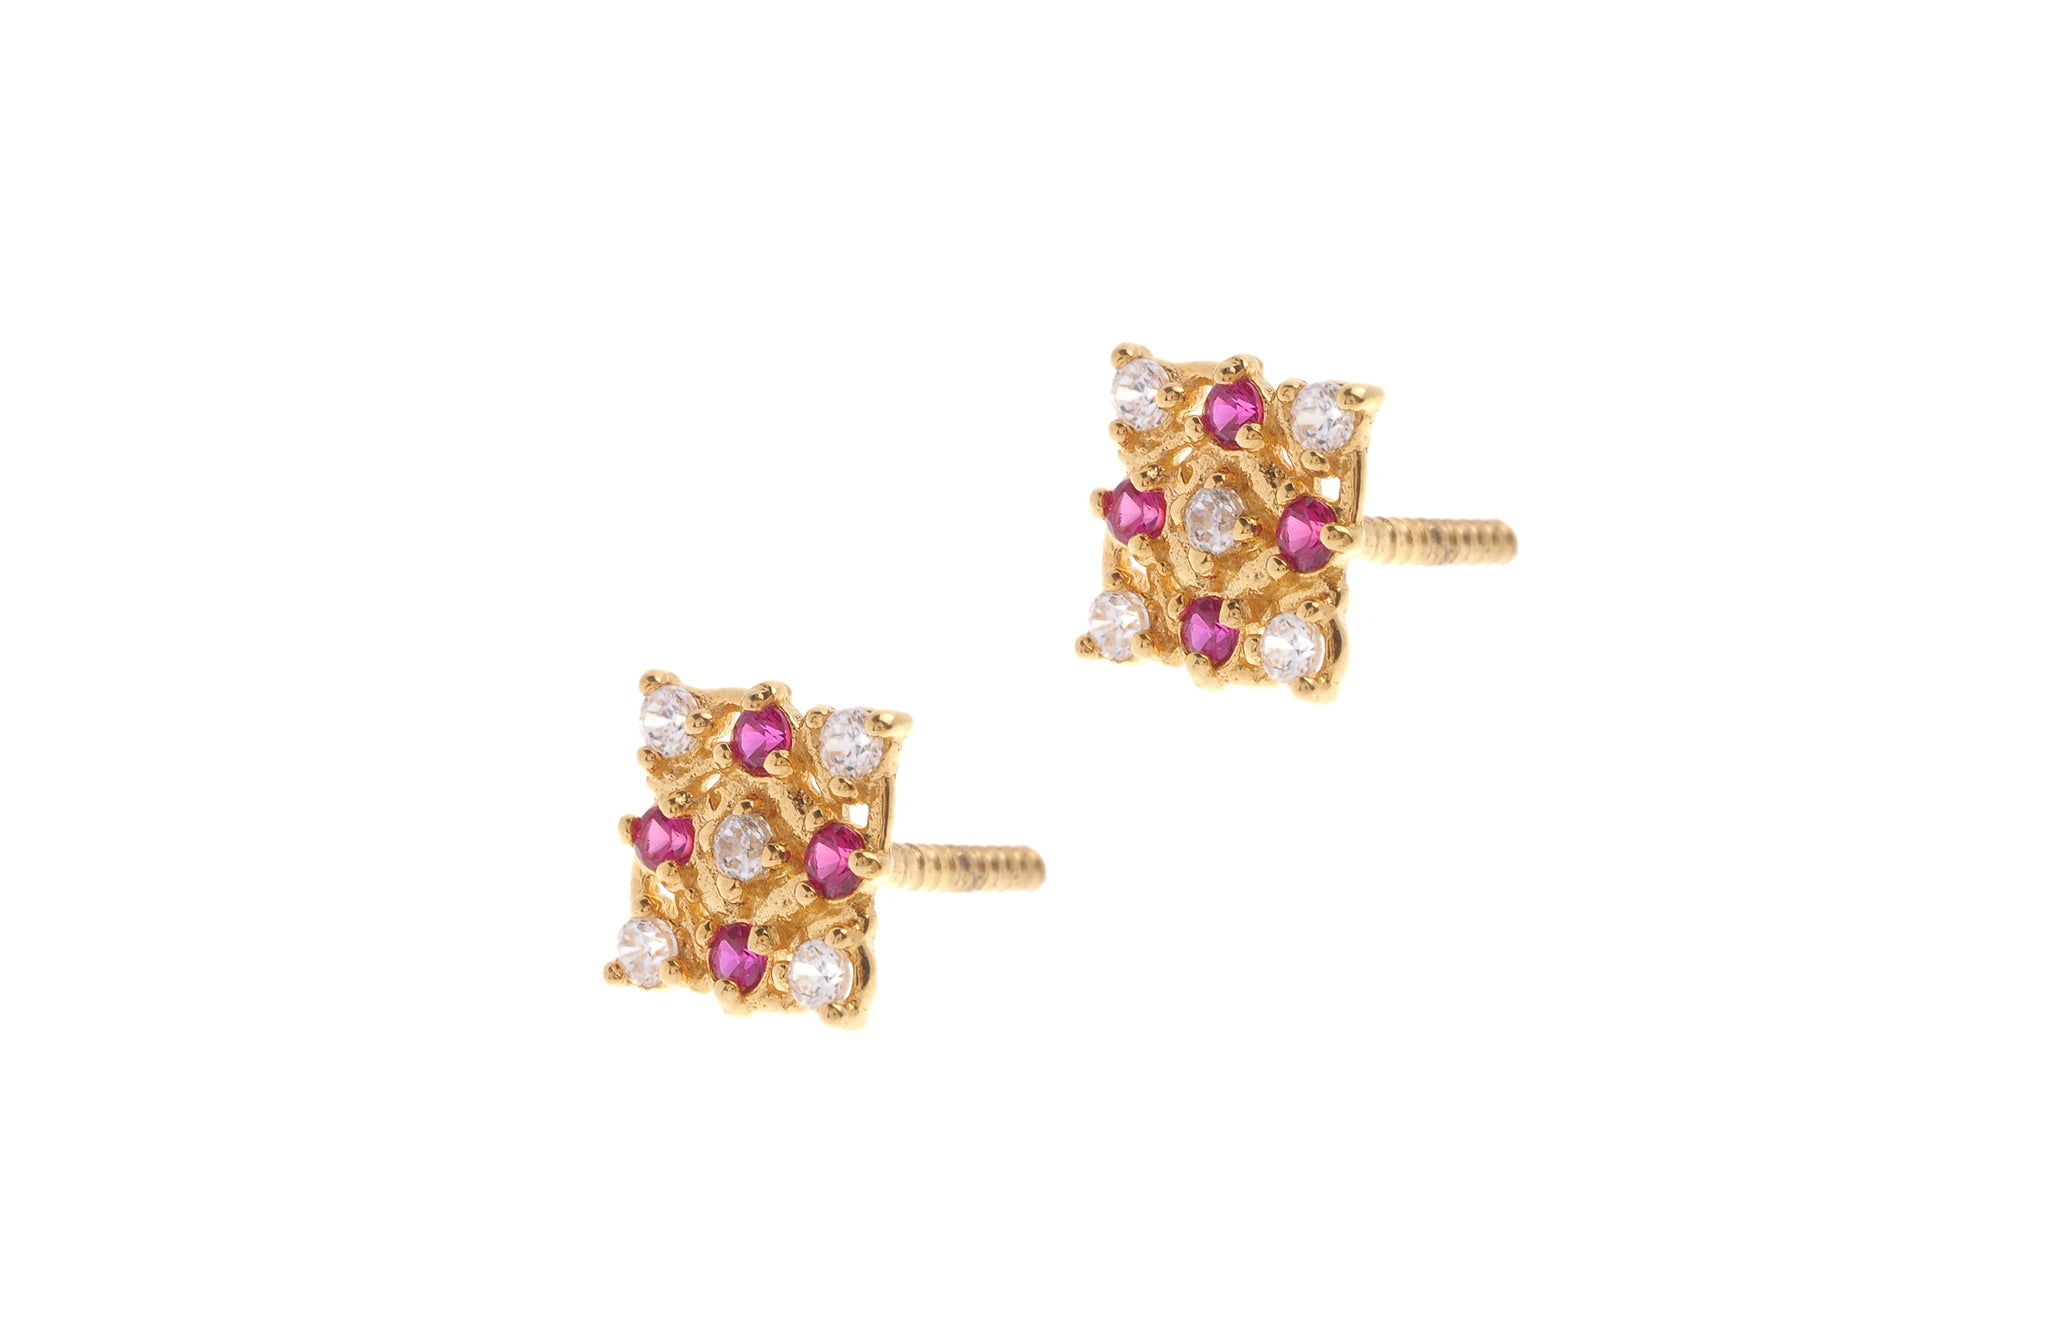 22ct Gold Stud Earrings Cubic Zirconia (White & Red) with Screw Backs (1.9g) (E-6641)